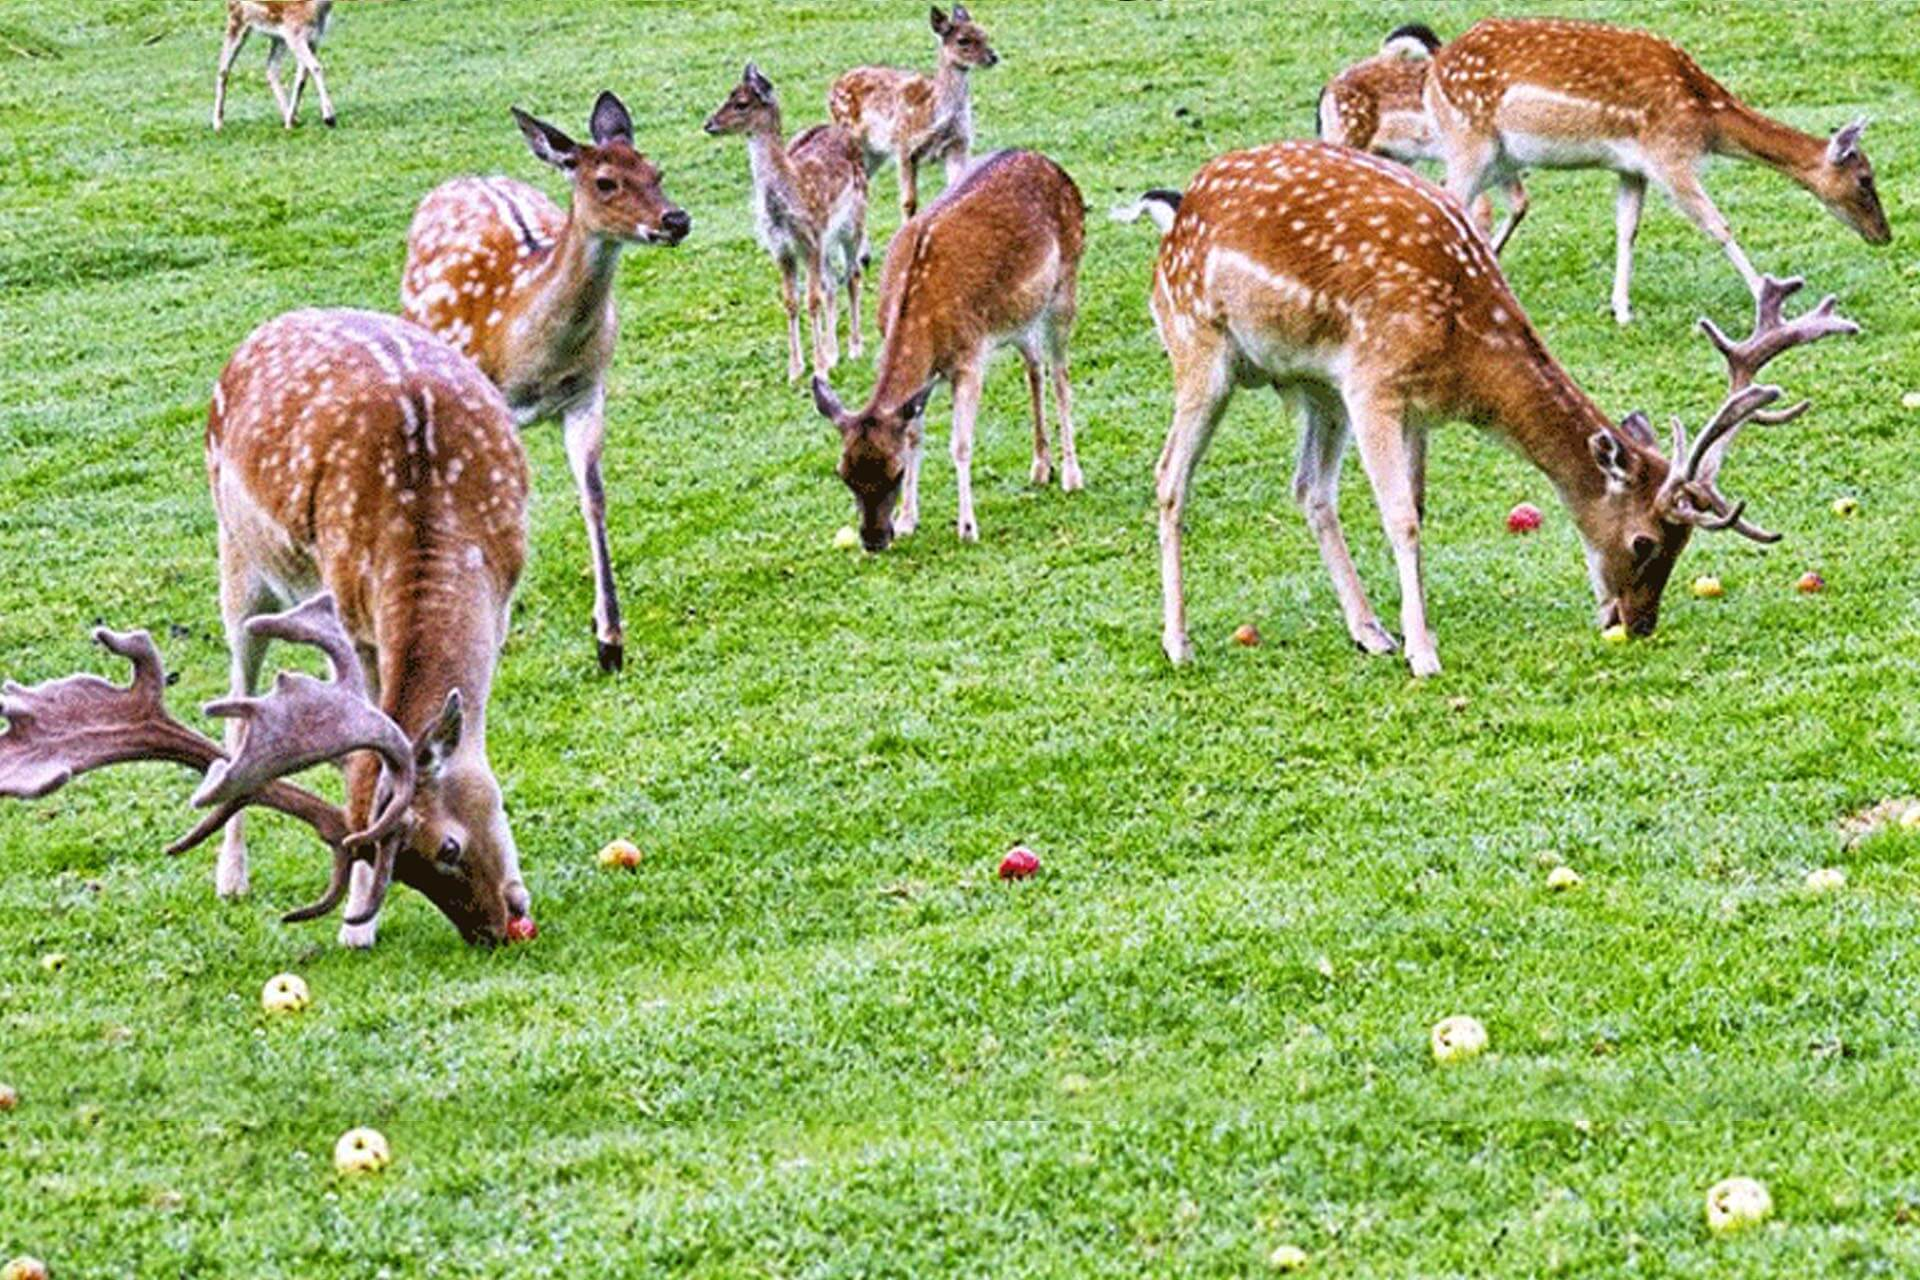 deer grazing on an extensive grass filed